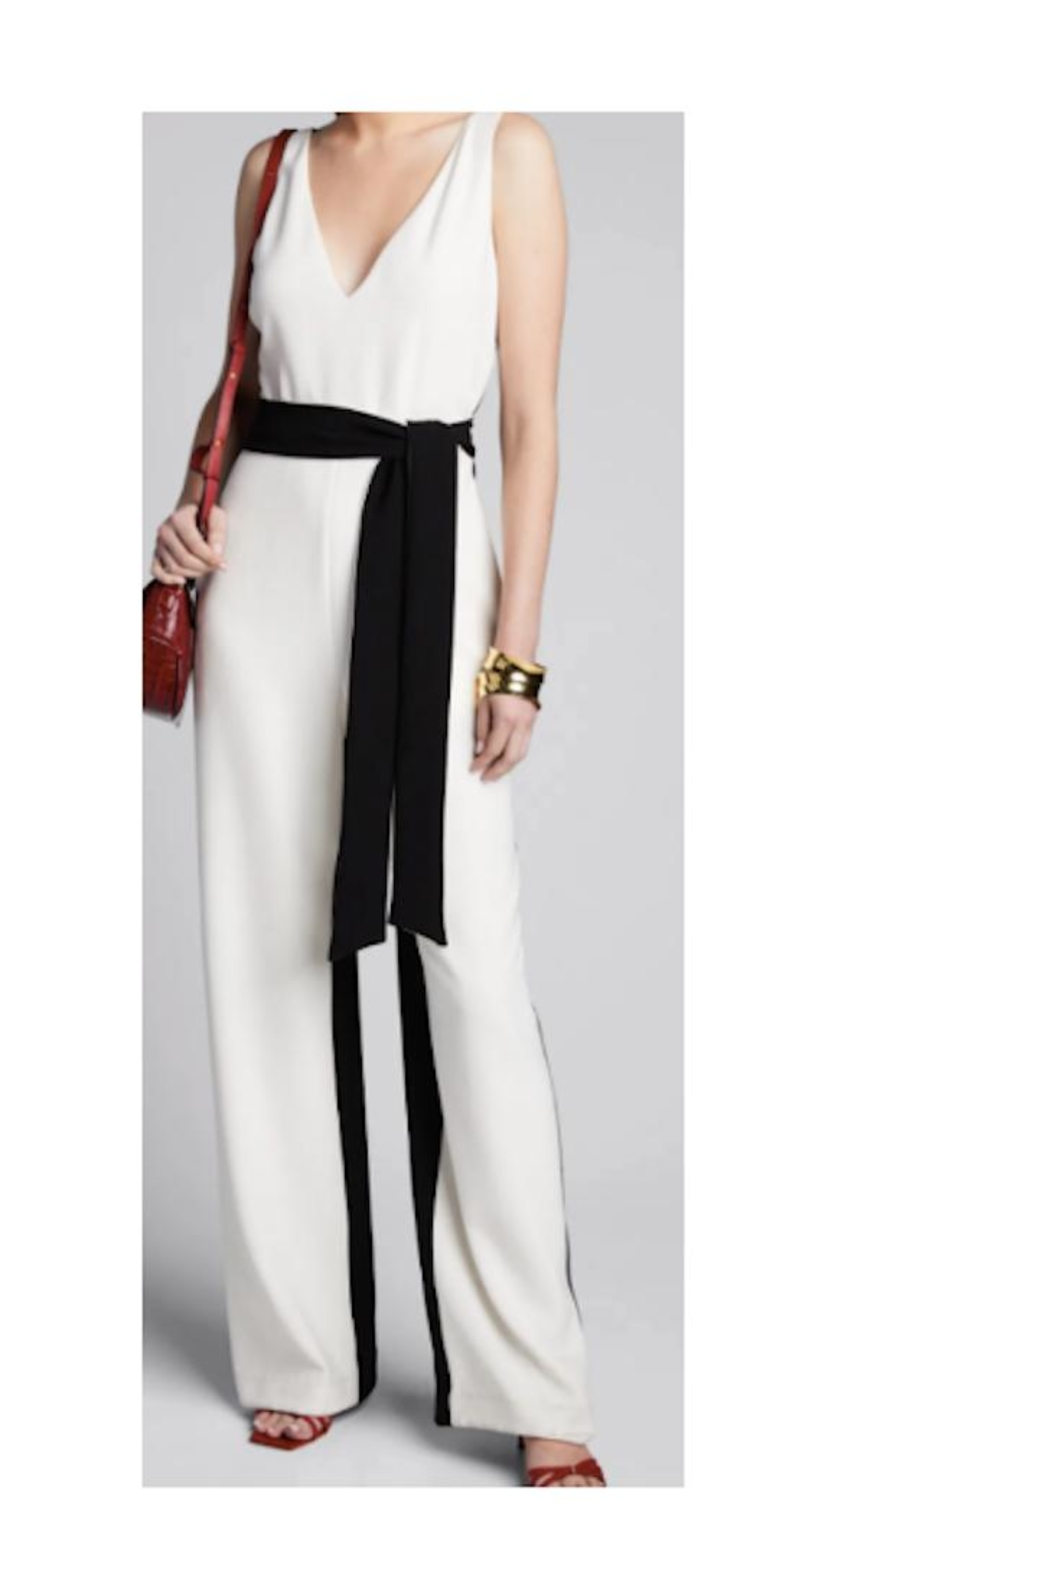 Tanya Taylor Jetta Two-Toned Jumpsuit - Main Image